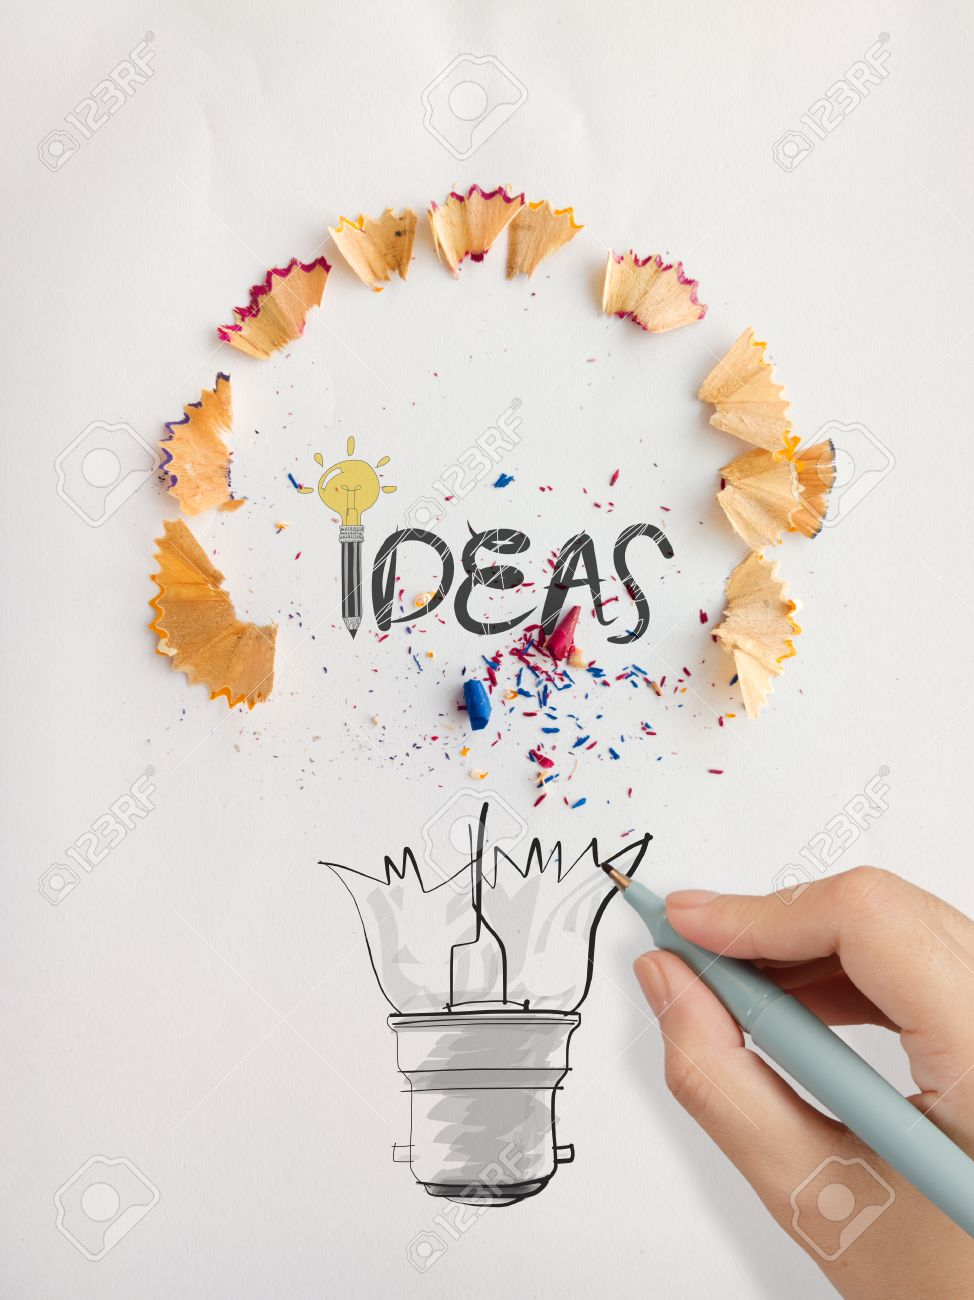 idea design stock photo hand drawn light bulb word design idea with pencil saw dust on - Design Idea